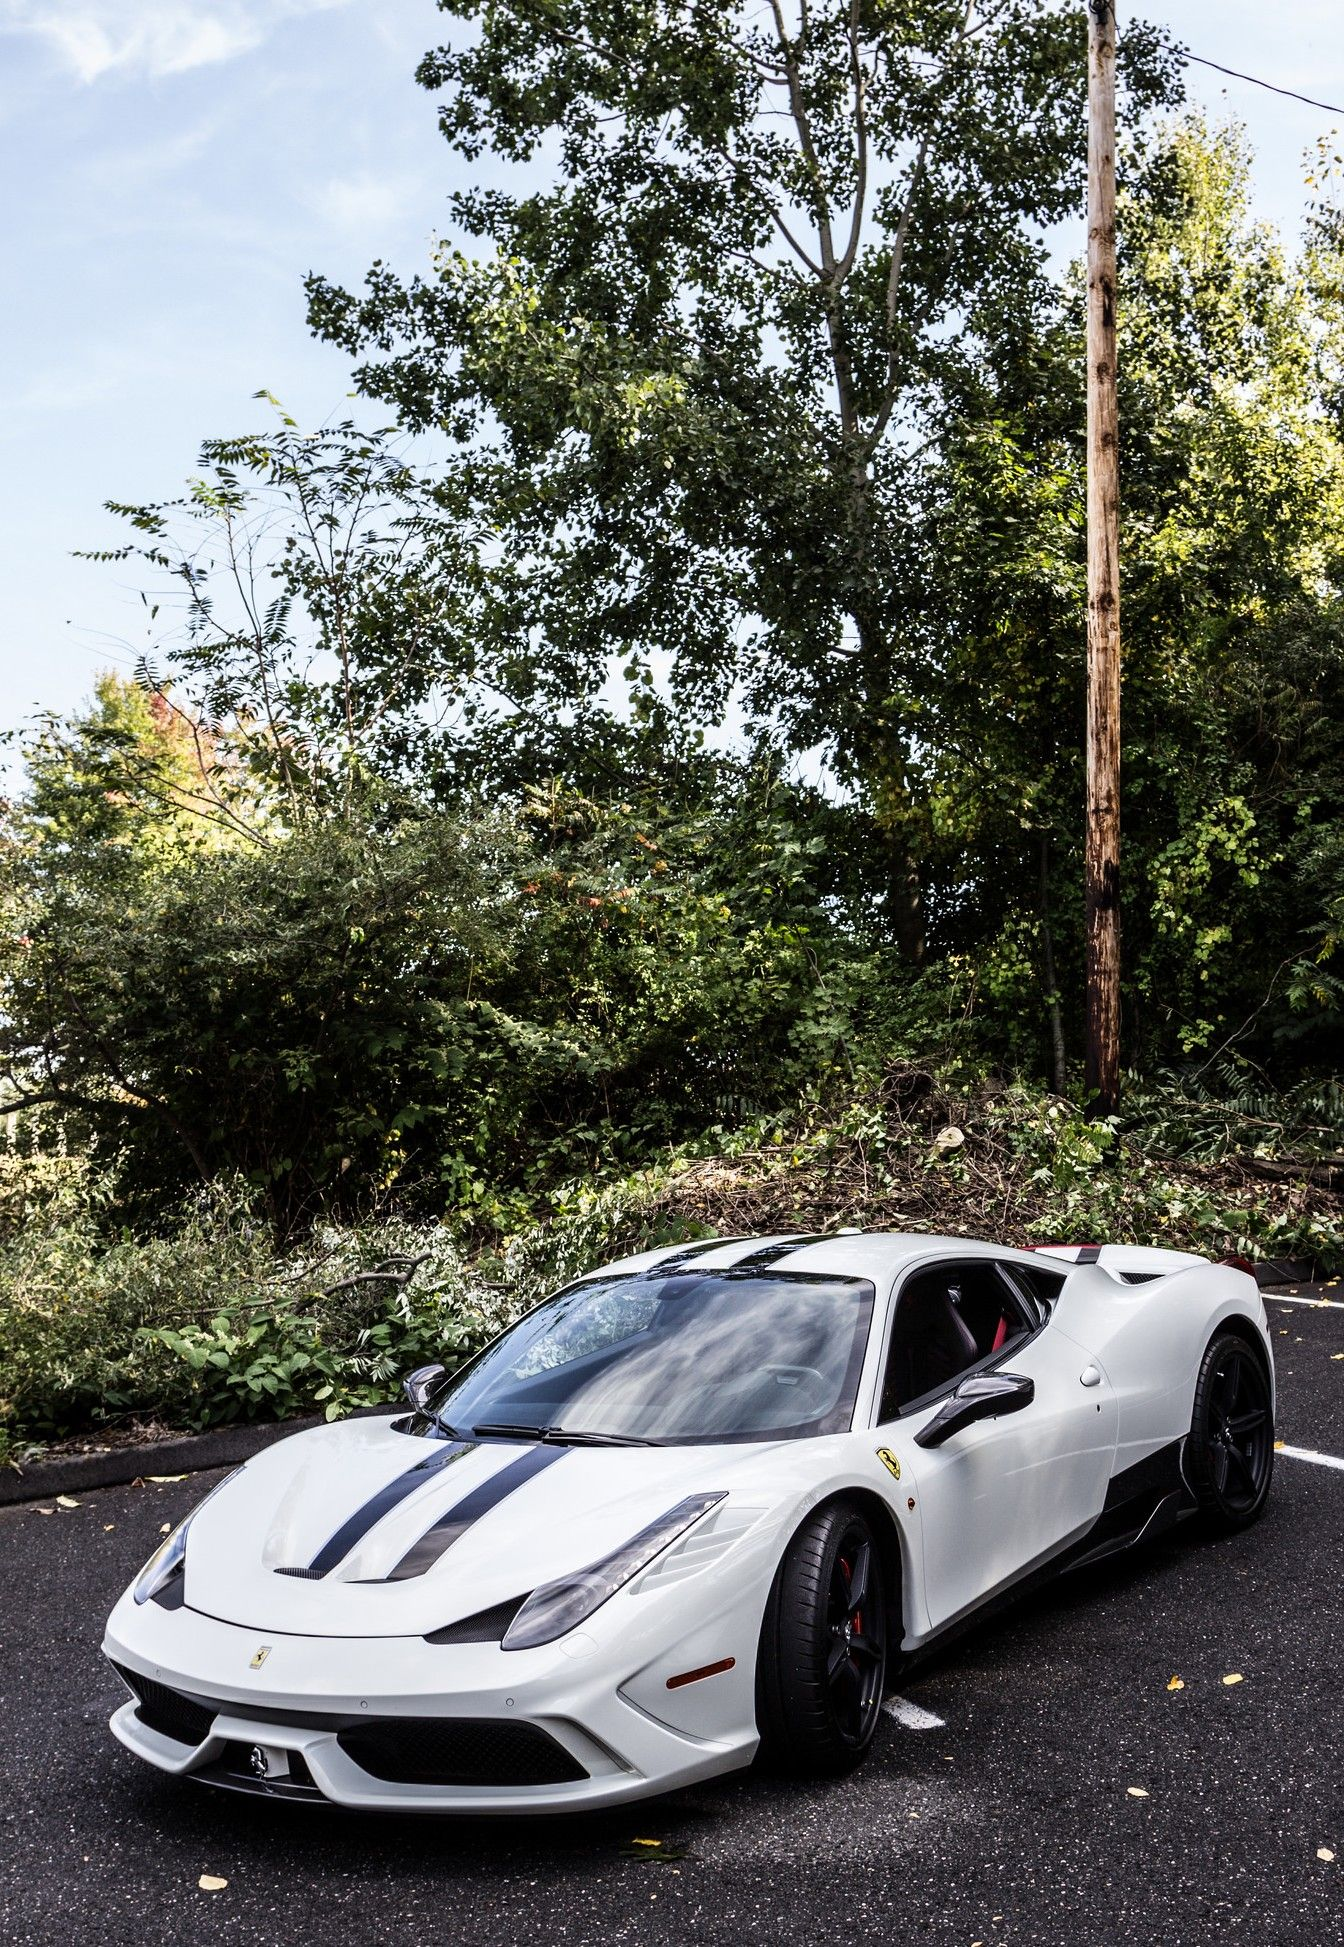 This Is How My Car Would Look Like White On Black Ferrari 458